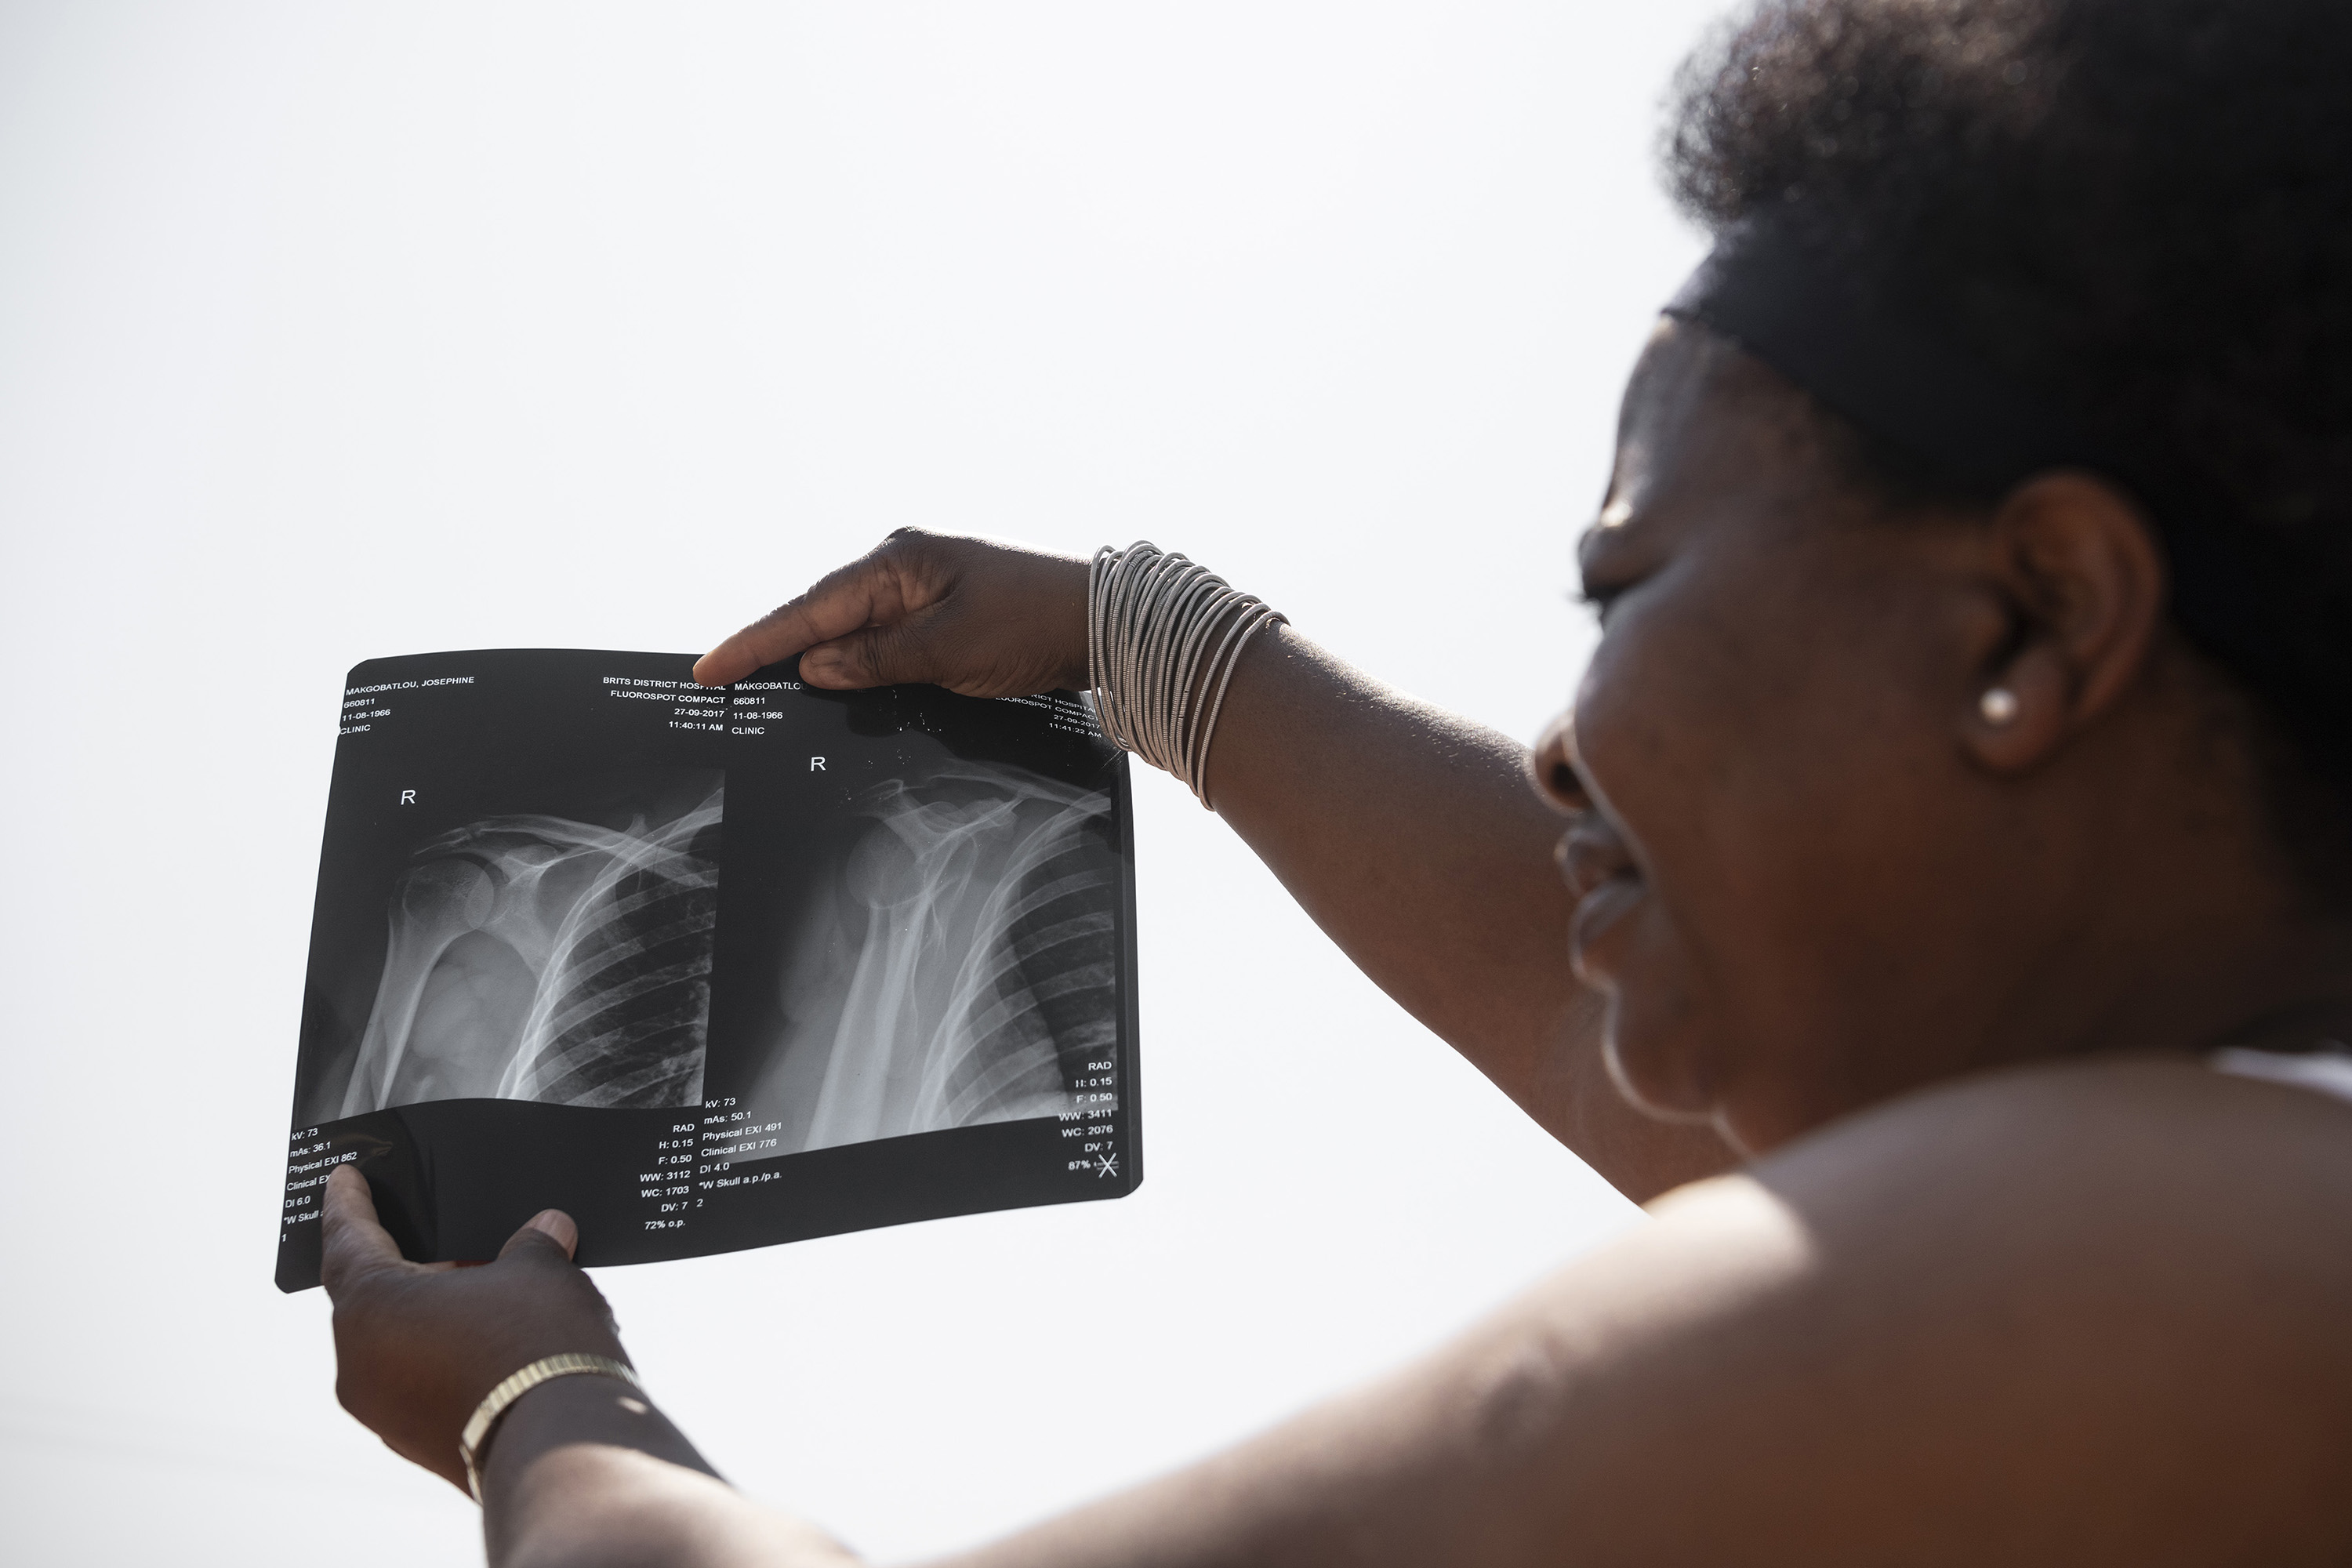 23 September 2019: Poppy Makgobatlou with X-rays of her shoulder showing the injuries she sustained when her former husband beat her.